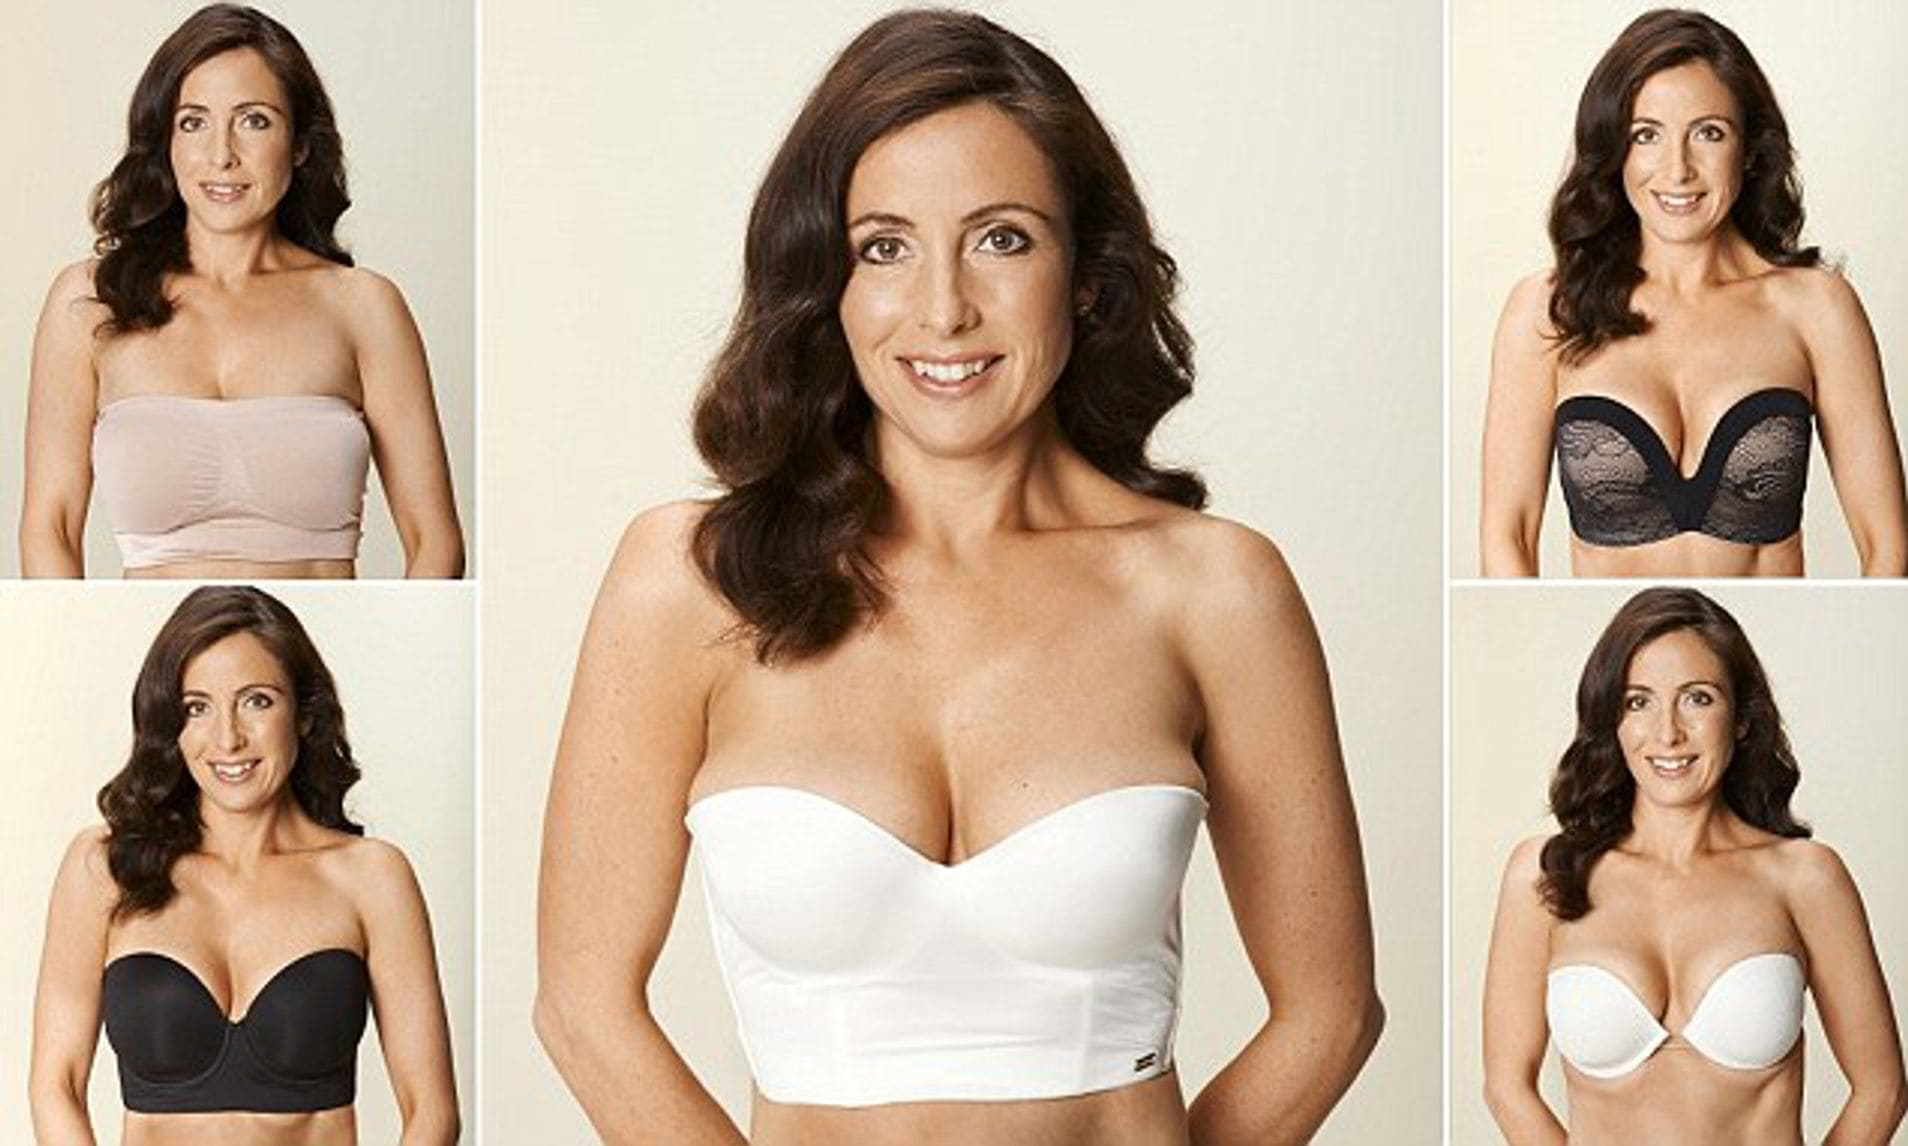 Best Strapless Bra For Large Breasts